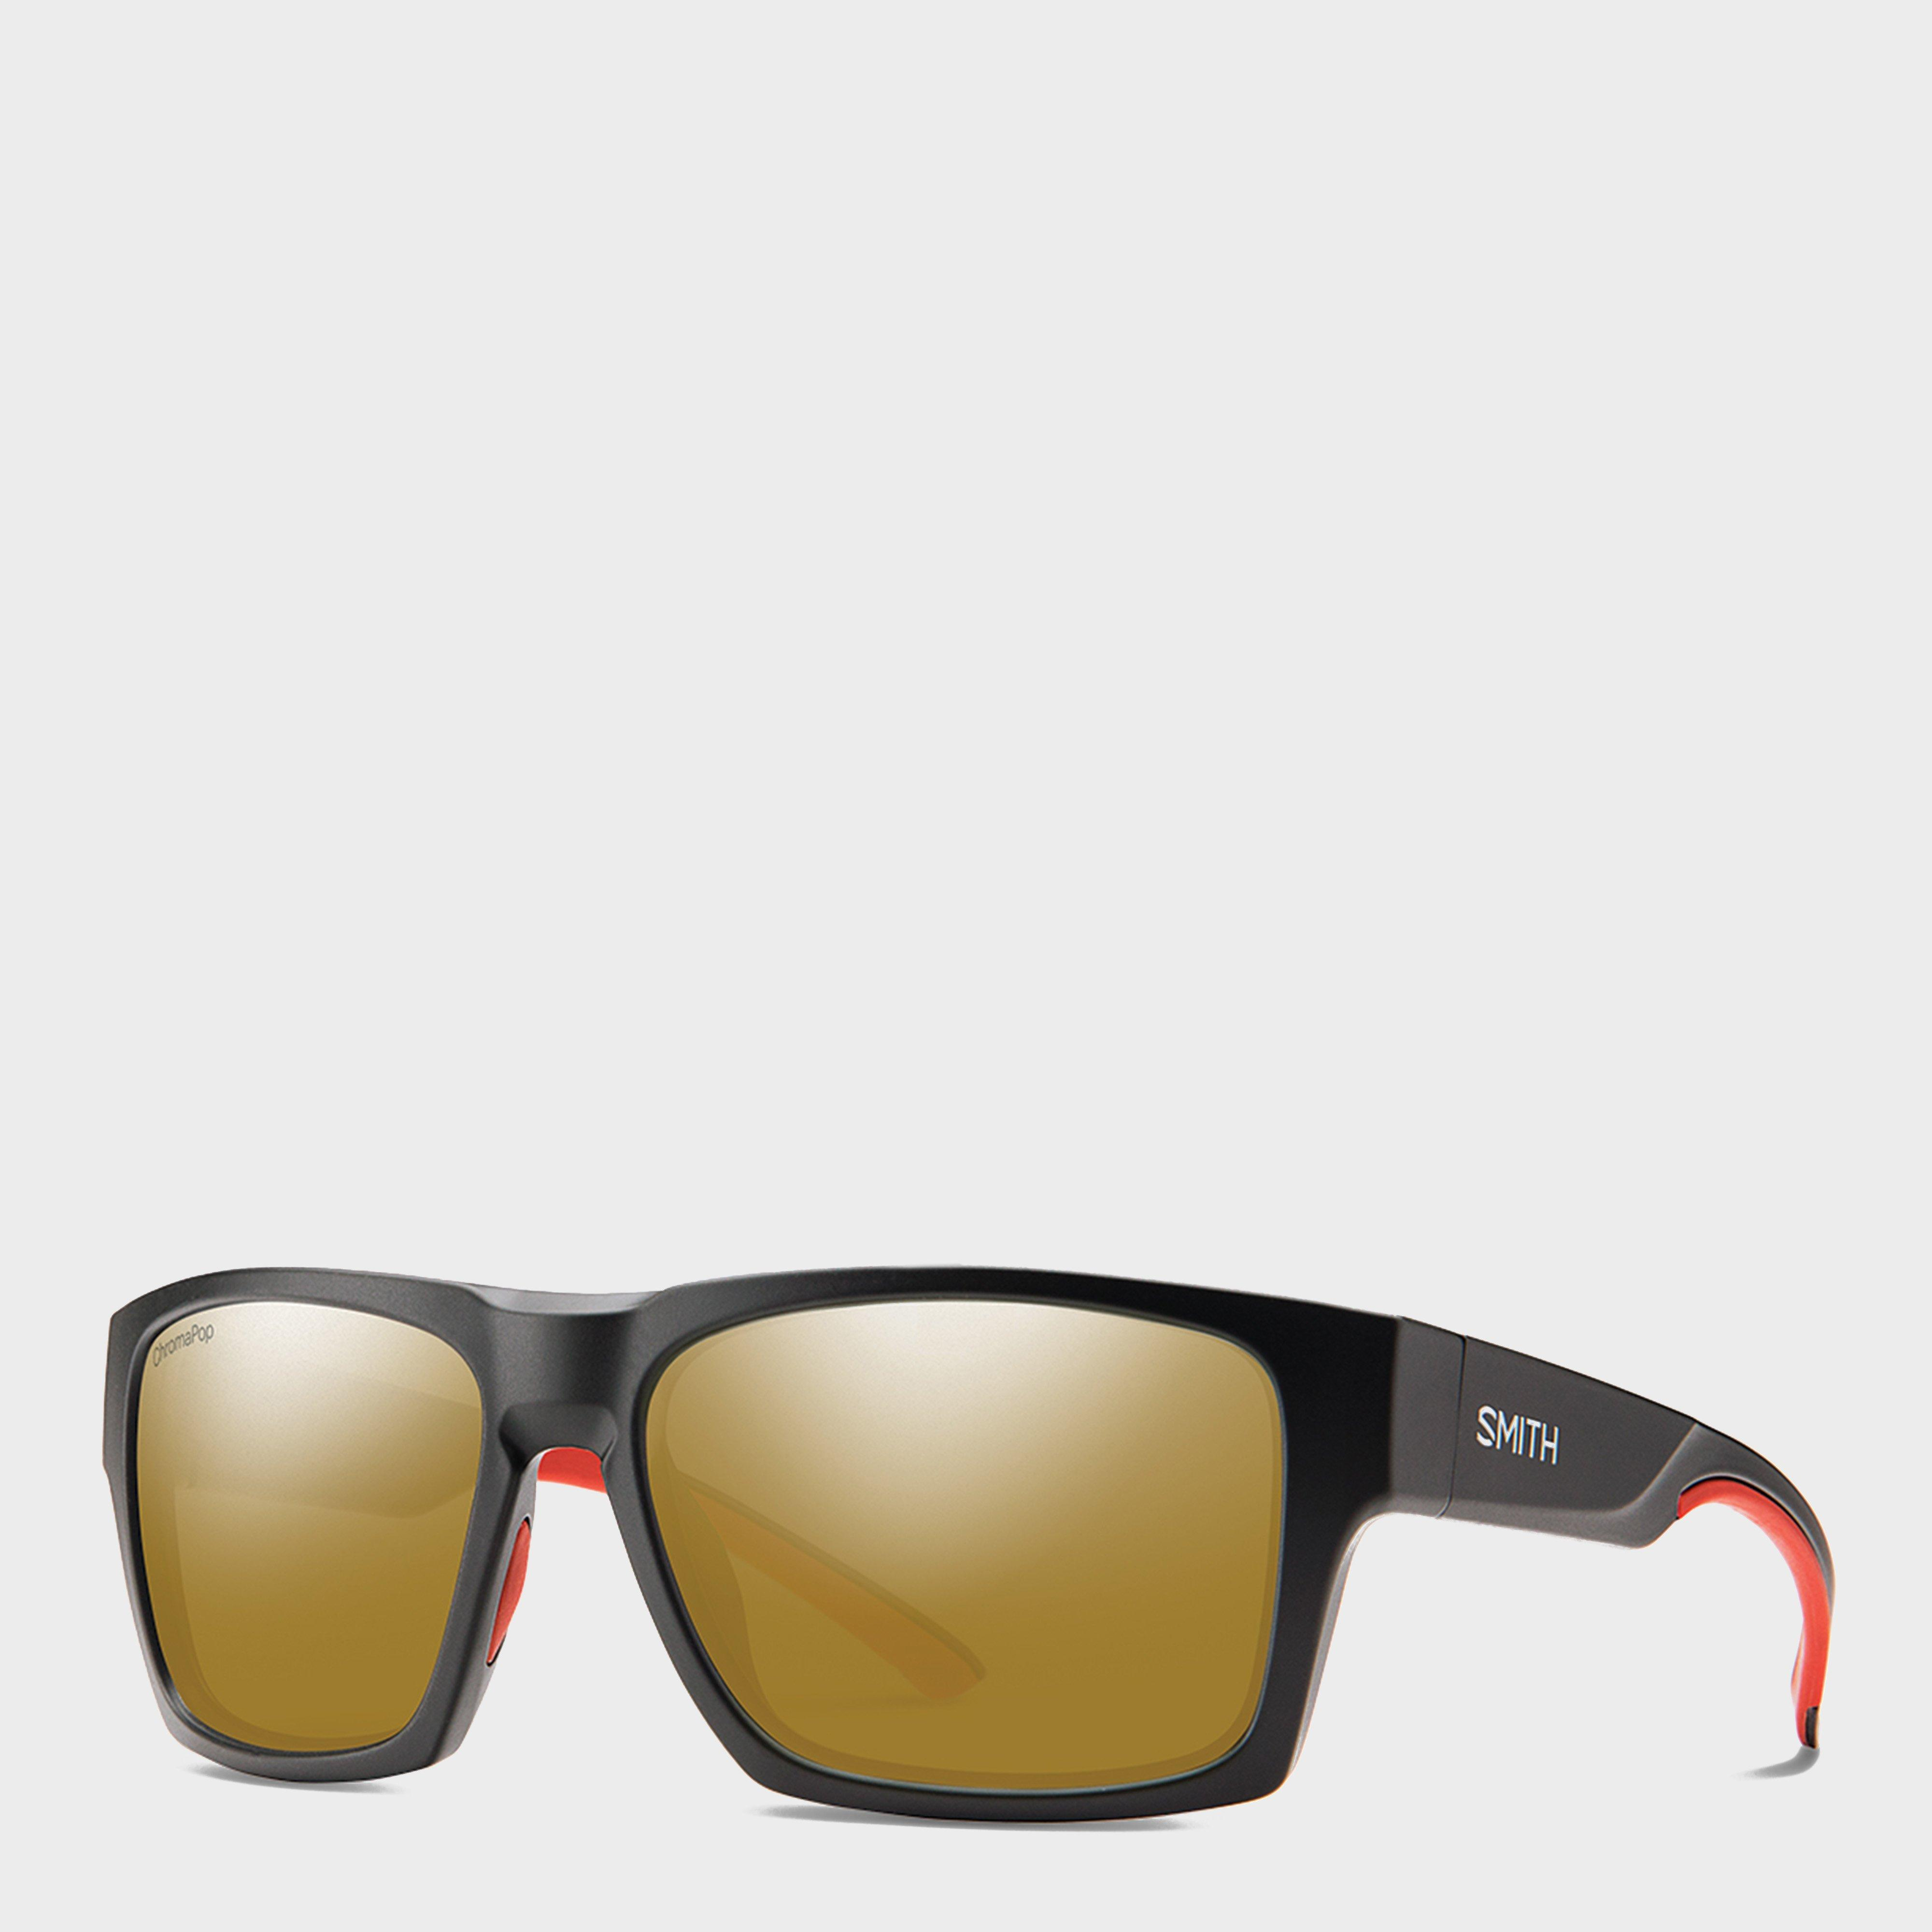 Smith Outlier 2 XL Sunglasses, Brown